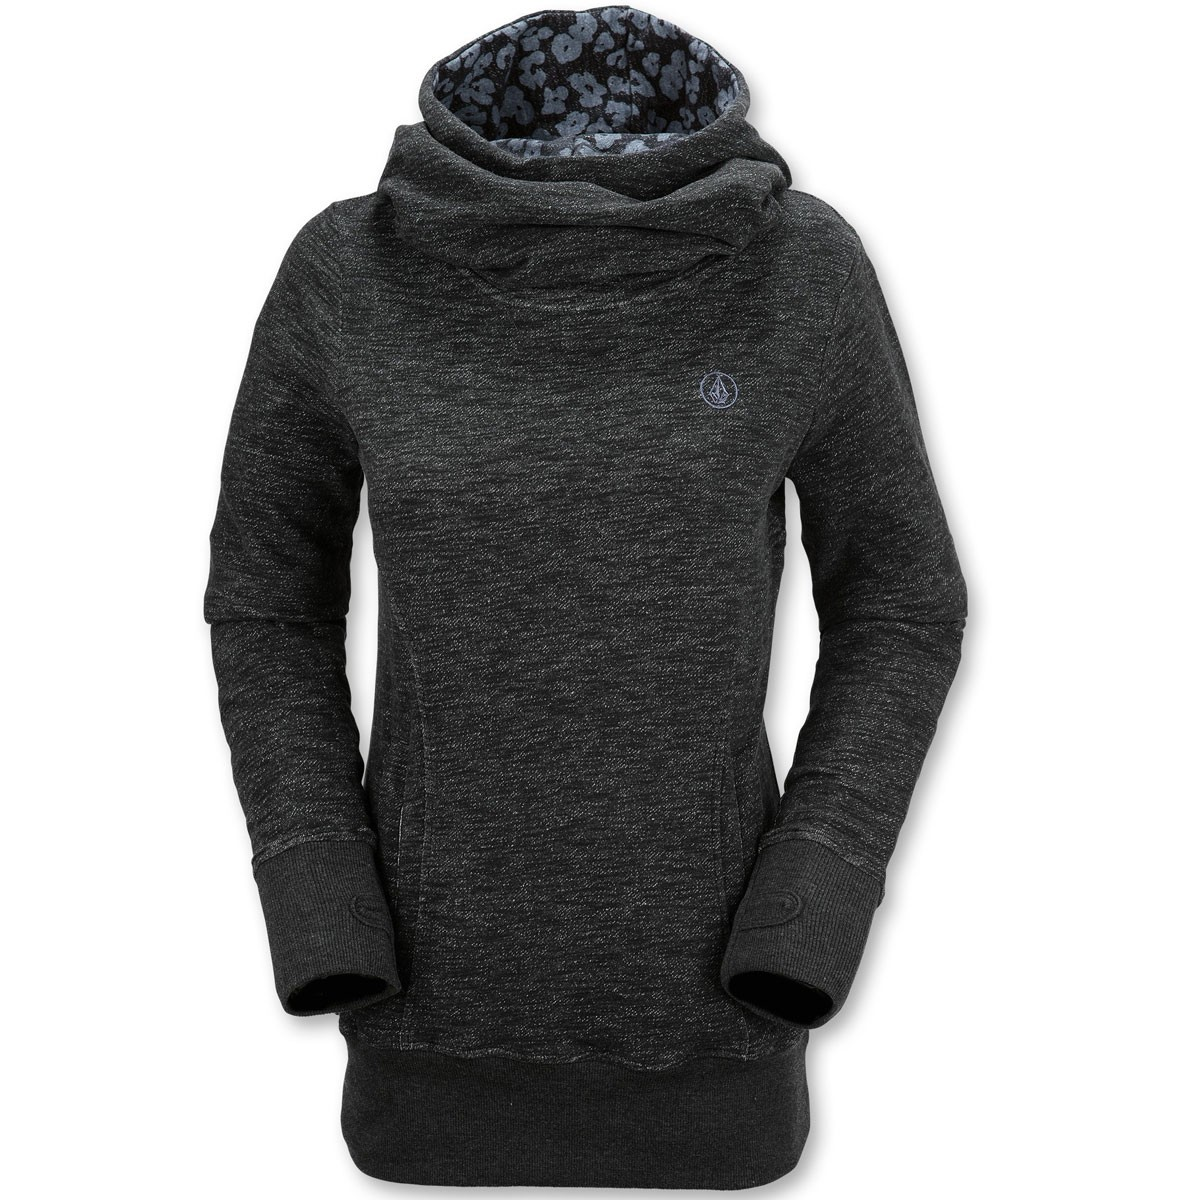 Tower Womens Pullover Fleece Hoodie - Black